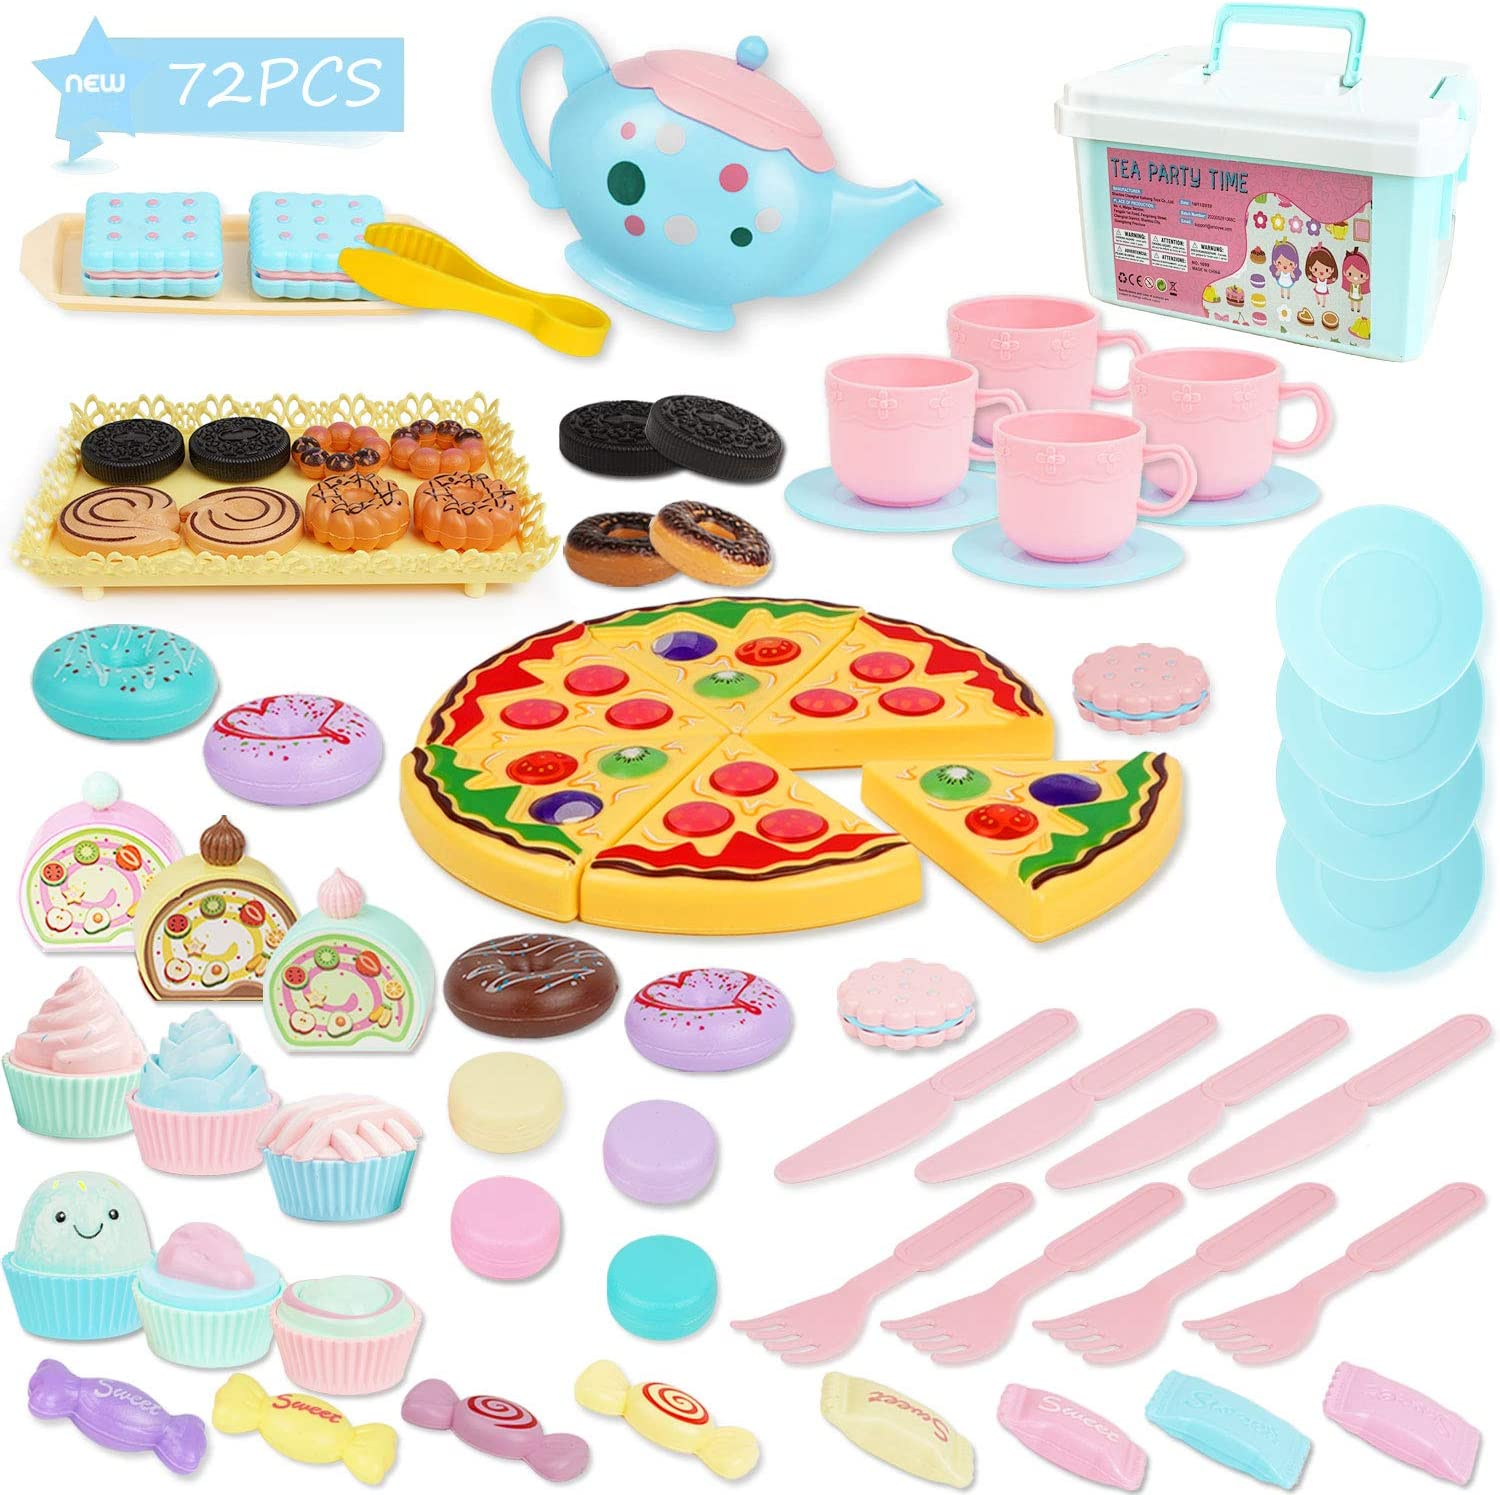 BGdoyz Kids Tea Time Set Princess Toy, 74 Pieces Pretend Play Food Set Tea Party Playset Accessories, Including Plastic Teapots Teacups Cookies Cakes Donuts for Toddlers,Boys Girls